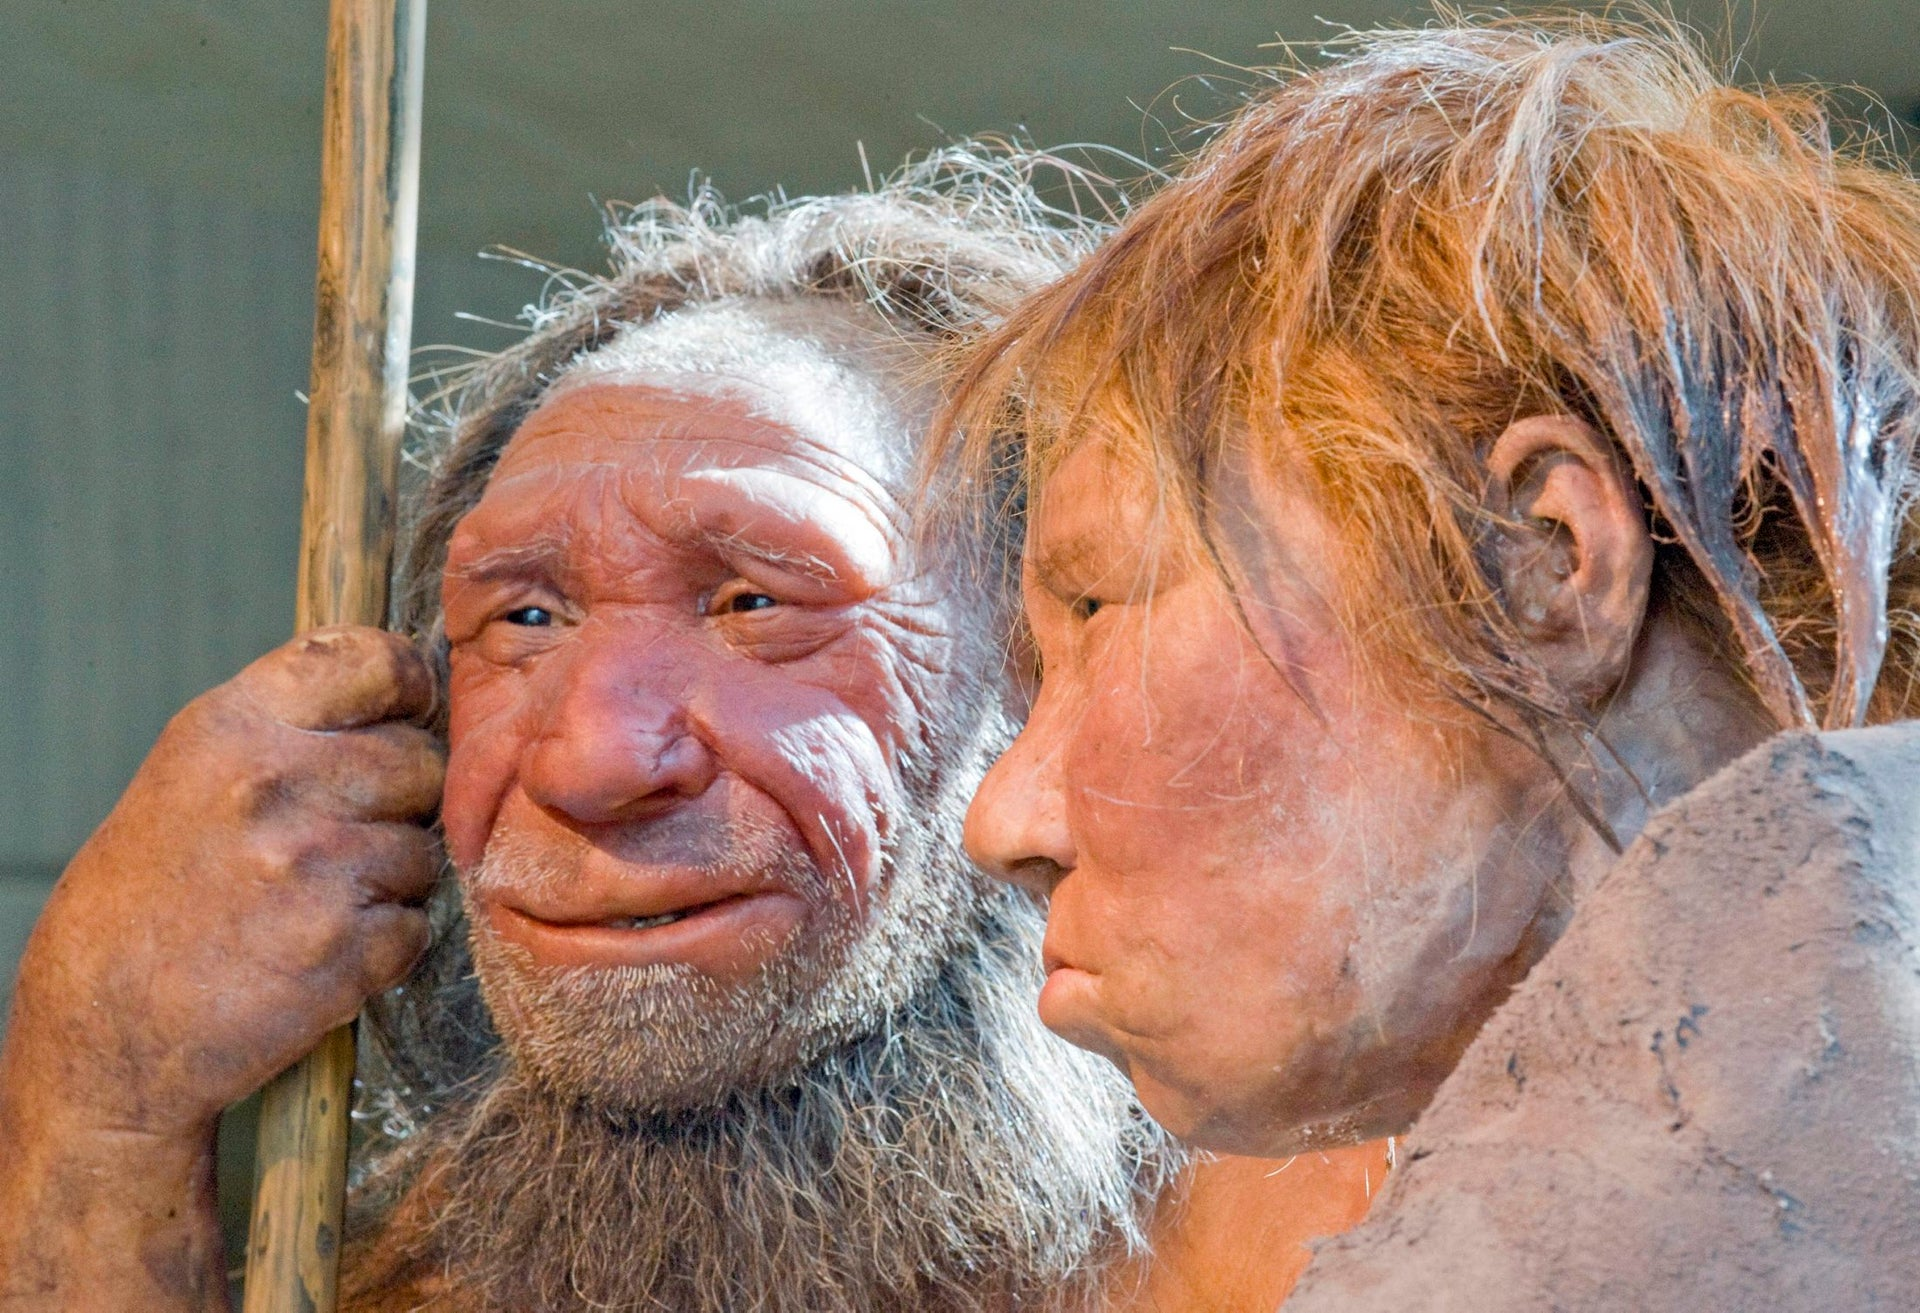 """Reconstructions of a Neanderthal man named """"N,"""" left, and woman called """"Wilma,"""" at the Neanderthal museum in Mettmann, Germany, 2009. Mixing with Neanderthals may have weakened us genetically."""